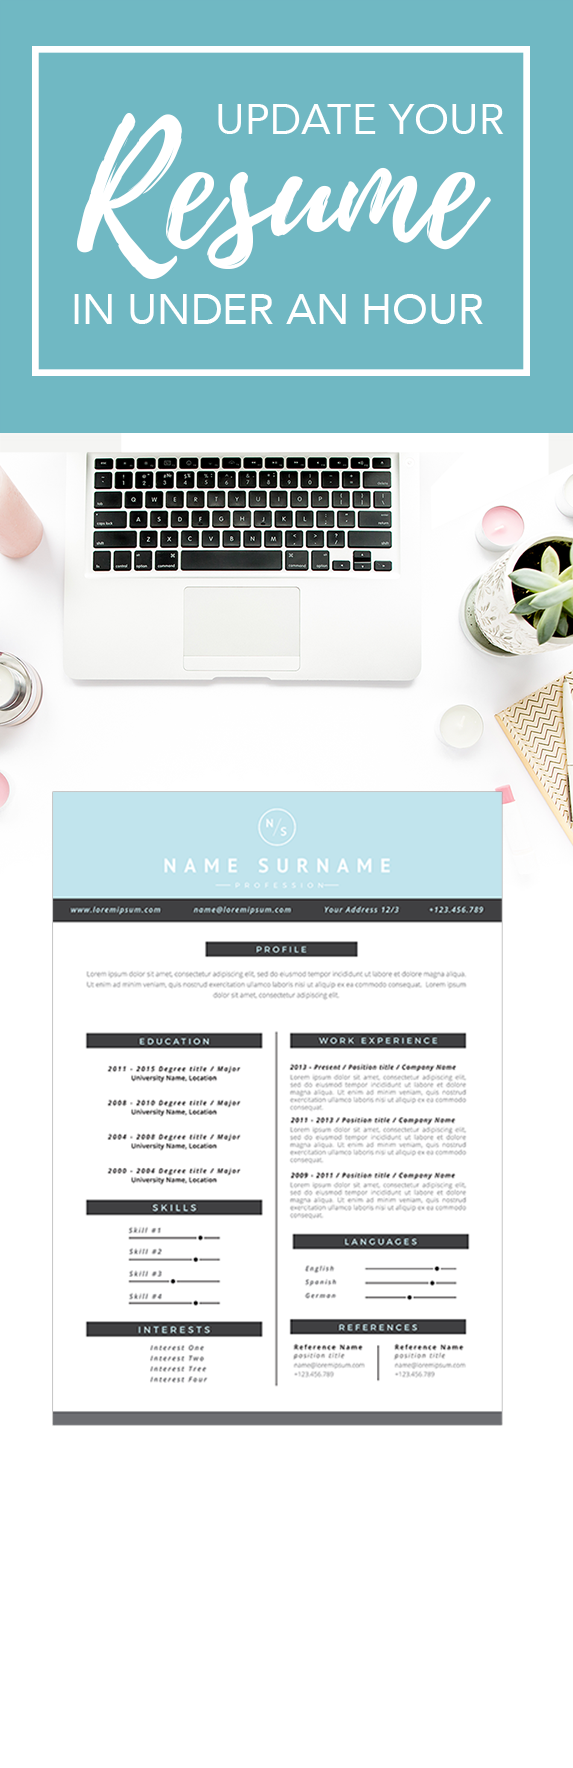 This Is The Best Way To Update Your Resume!